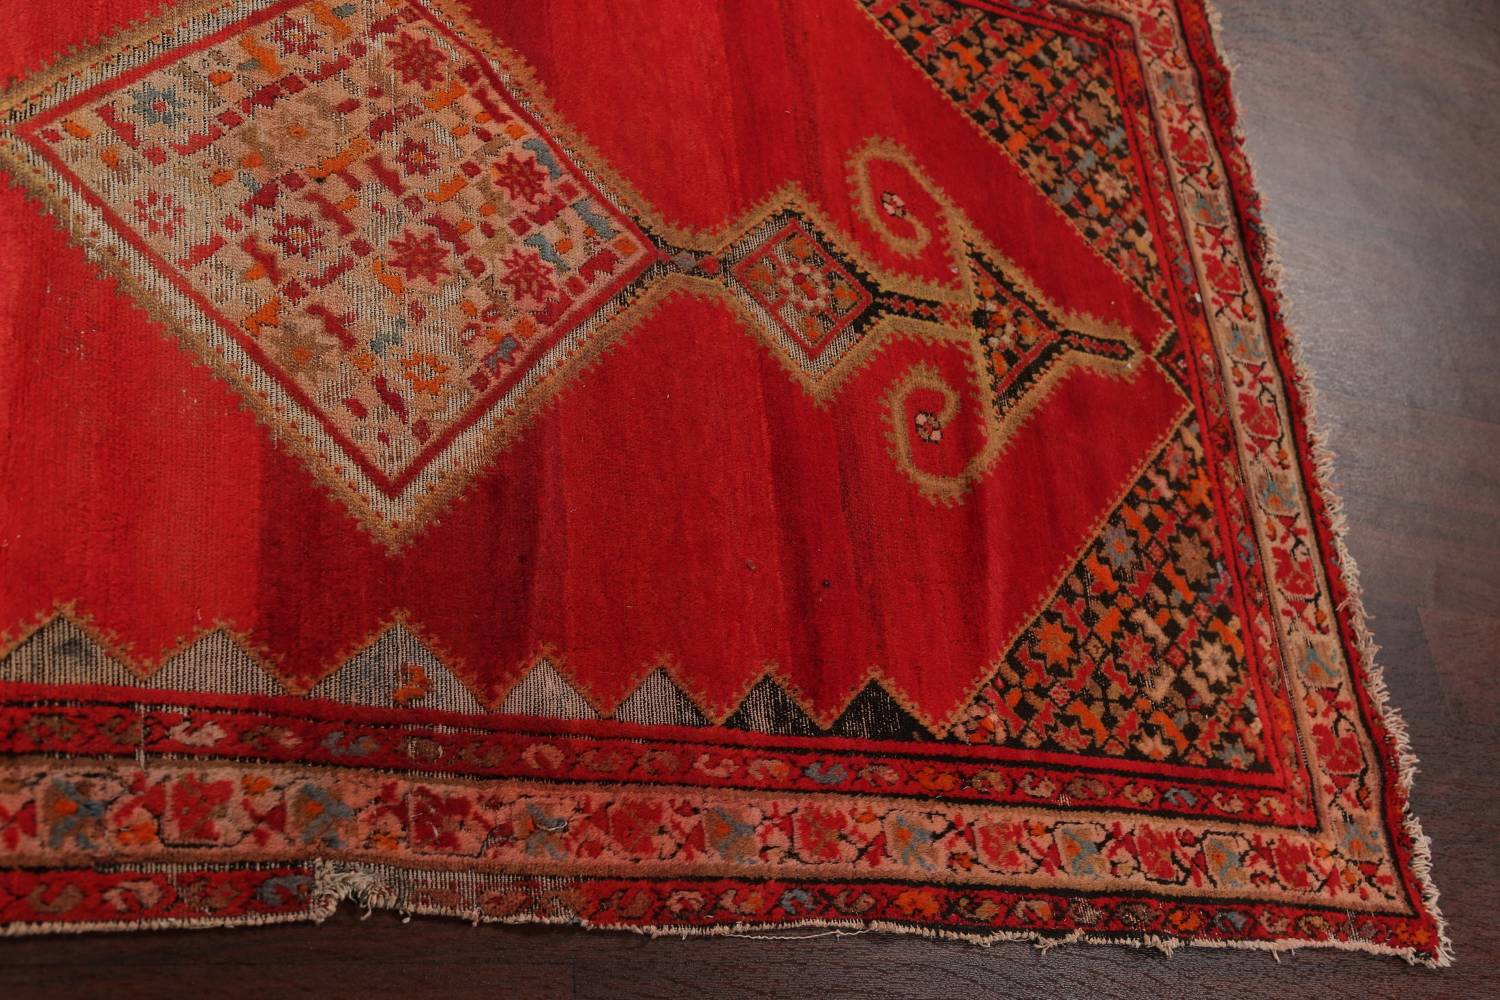 Pre-1900 Antique Bibikabad Persian Hand-Knotted 4x7 Wool Area Rug image 15